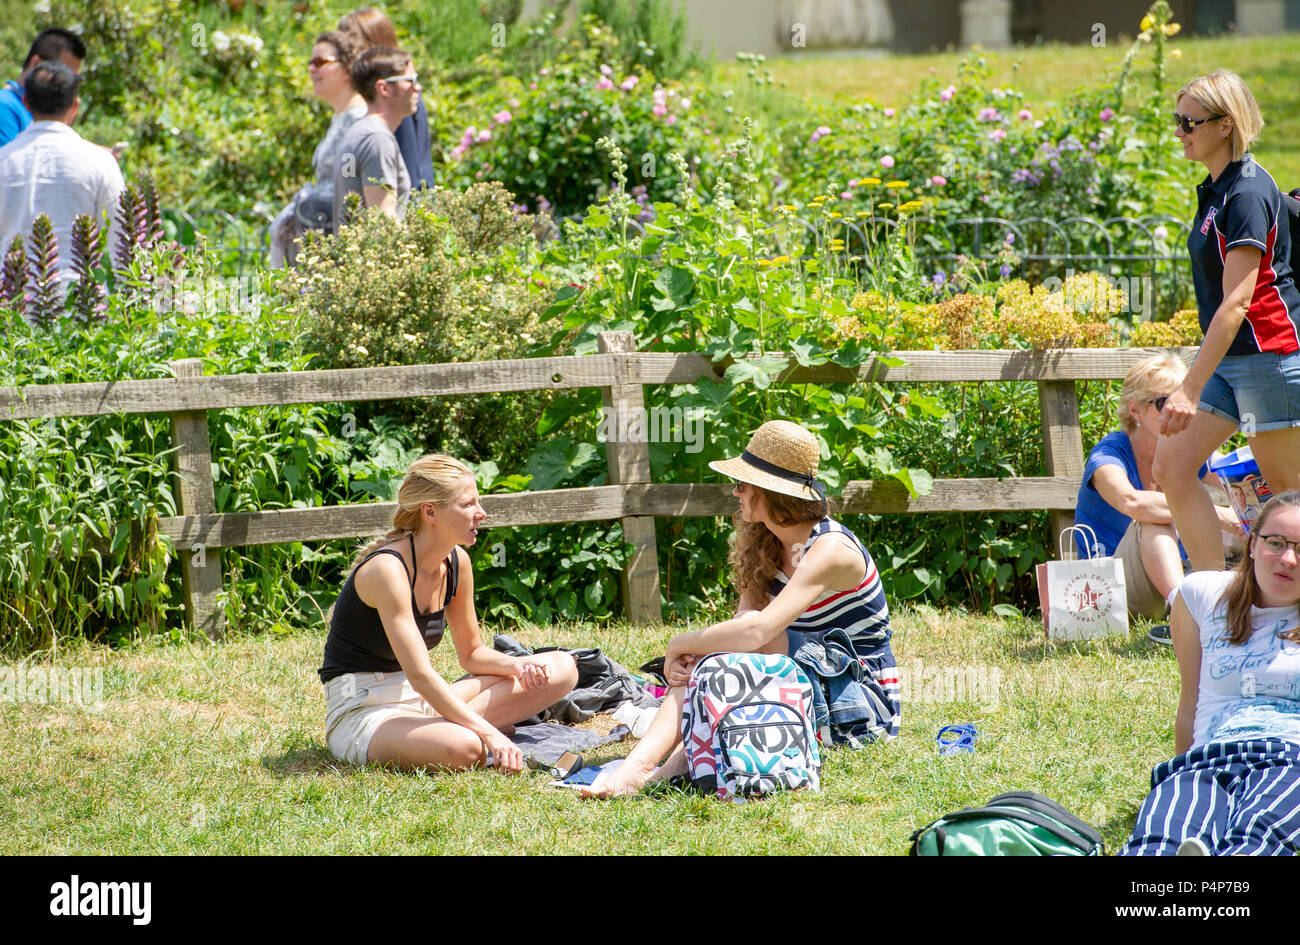 Brighton UK 23rd June 2018 - Pavilion Gardens is packed in Brighton as visitors enjoy the sunshine with temperatures set to soar throughout Britain over the next few days Credit: Simon Dack/Alamy Live News - Stock Image